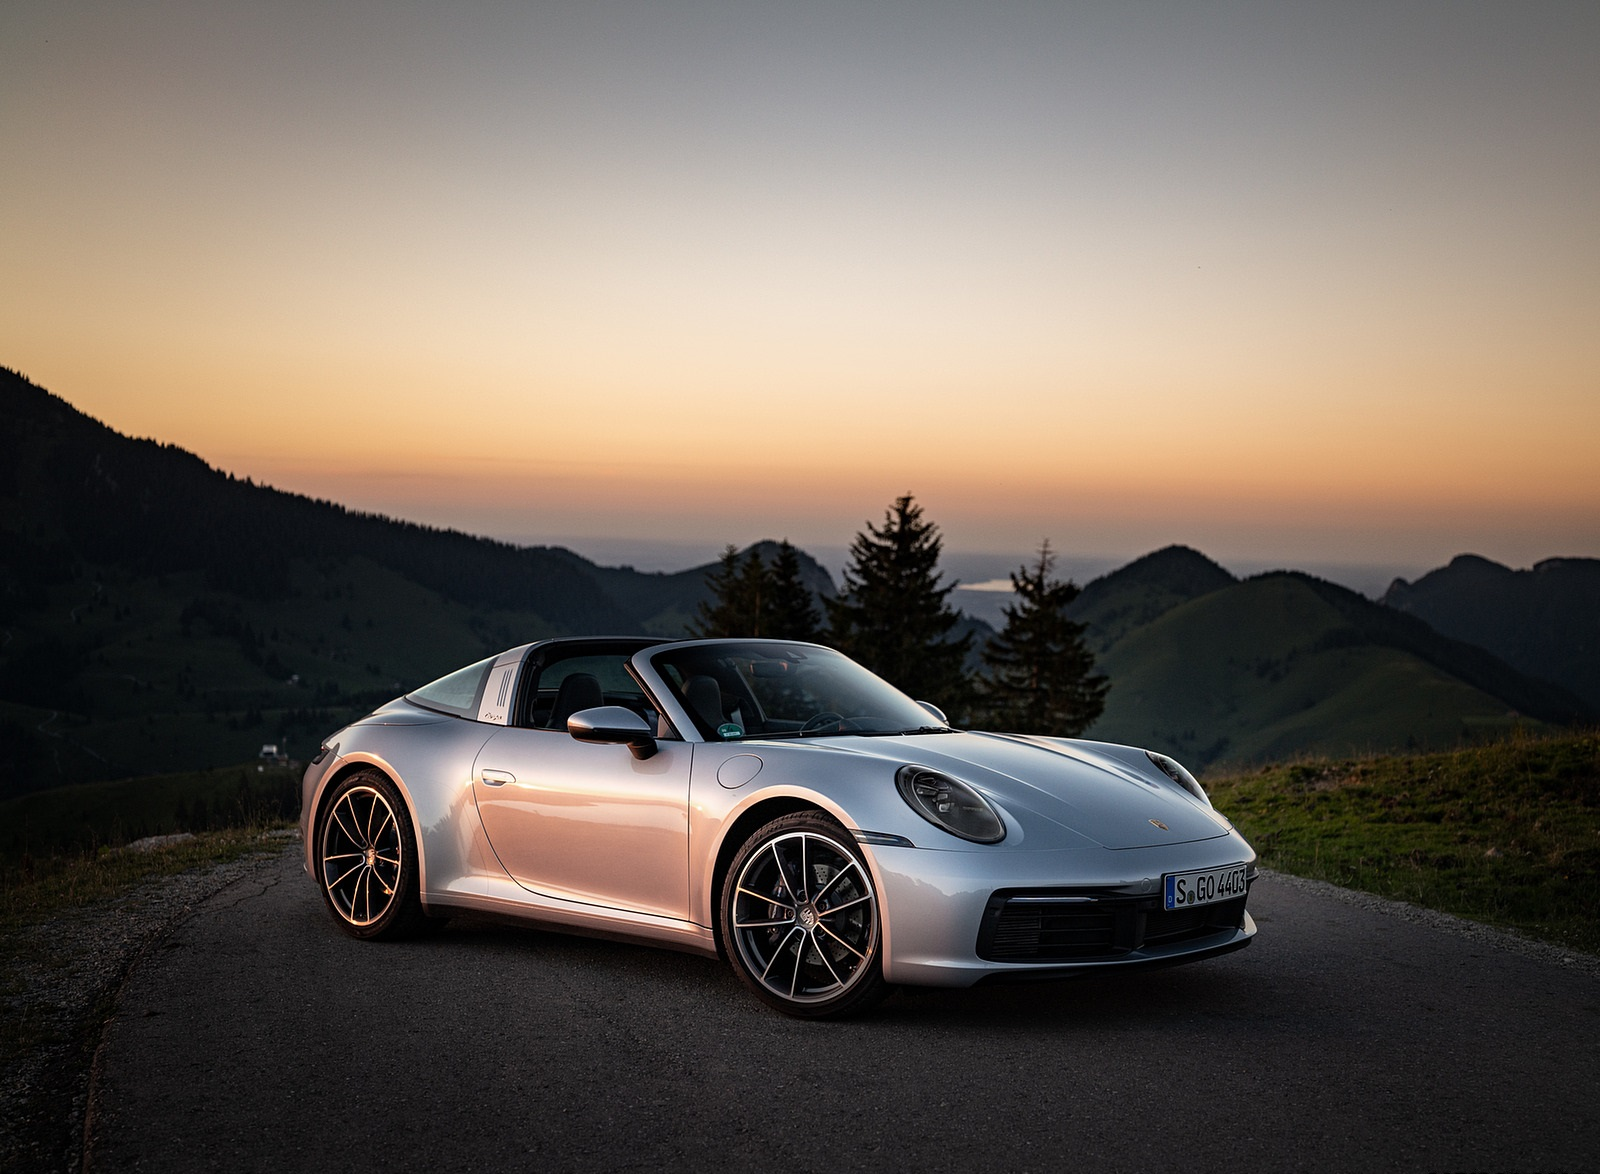 2021 Porsche 911 Targa 4 (Color: Dolomite Silver Metallic) Front Three-Quarter Wallpapers (10)